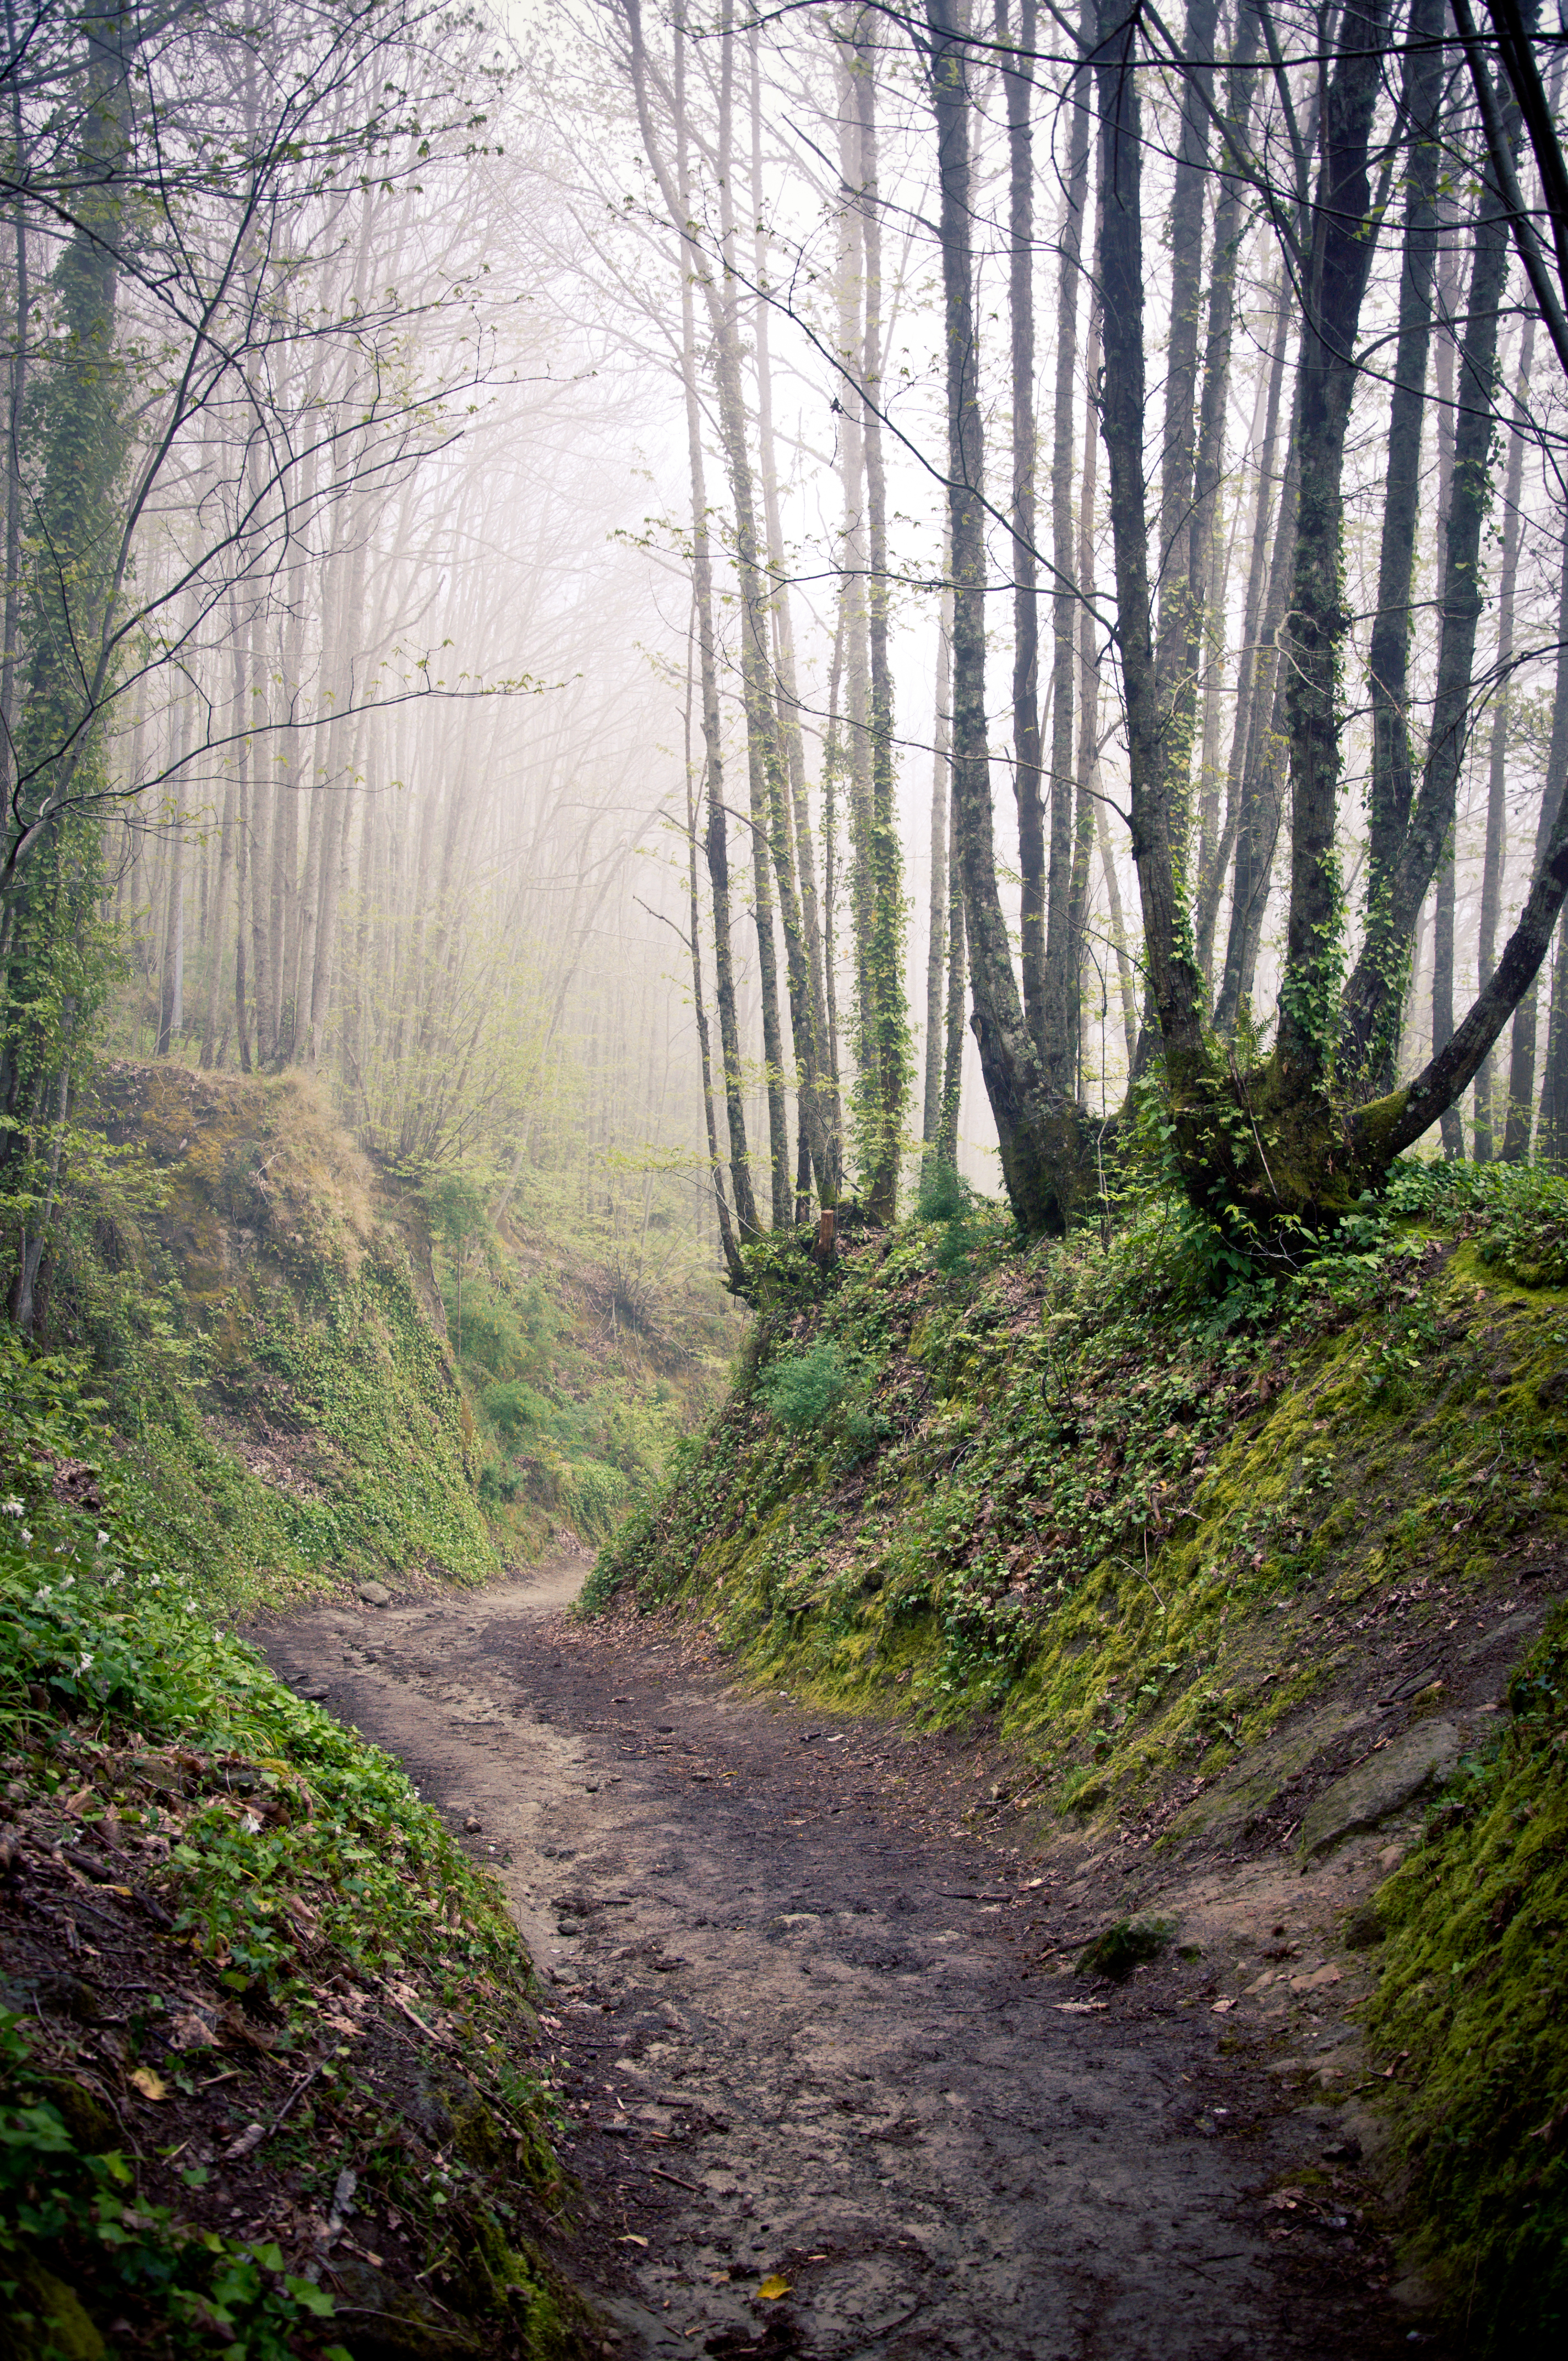 Walking path in forest at morning photo